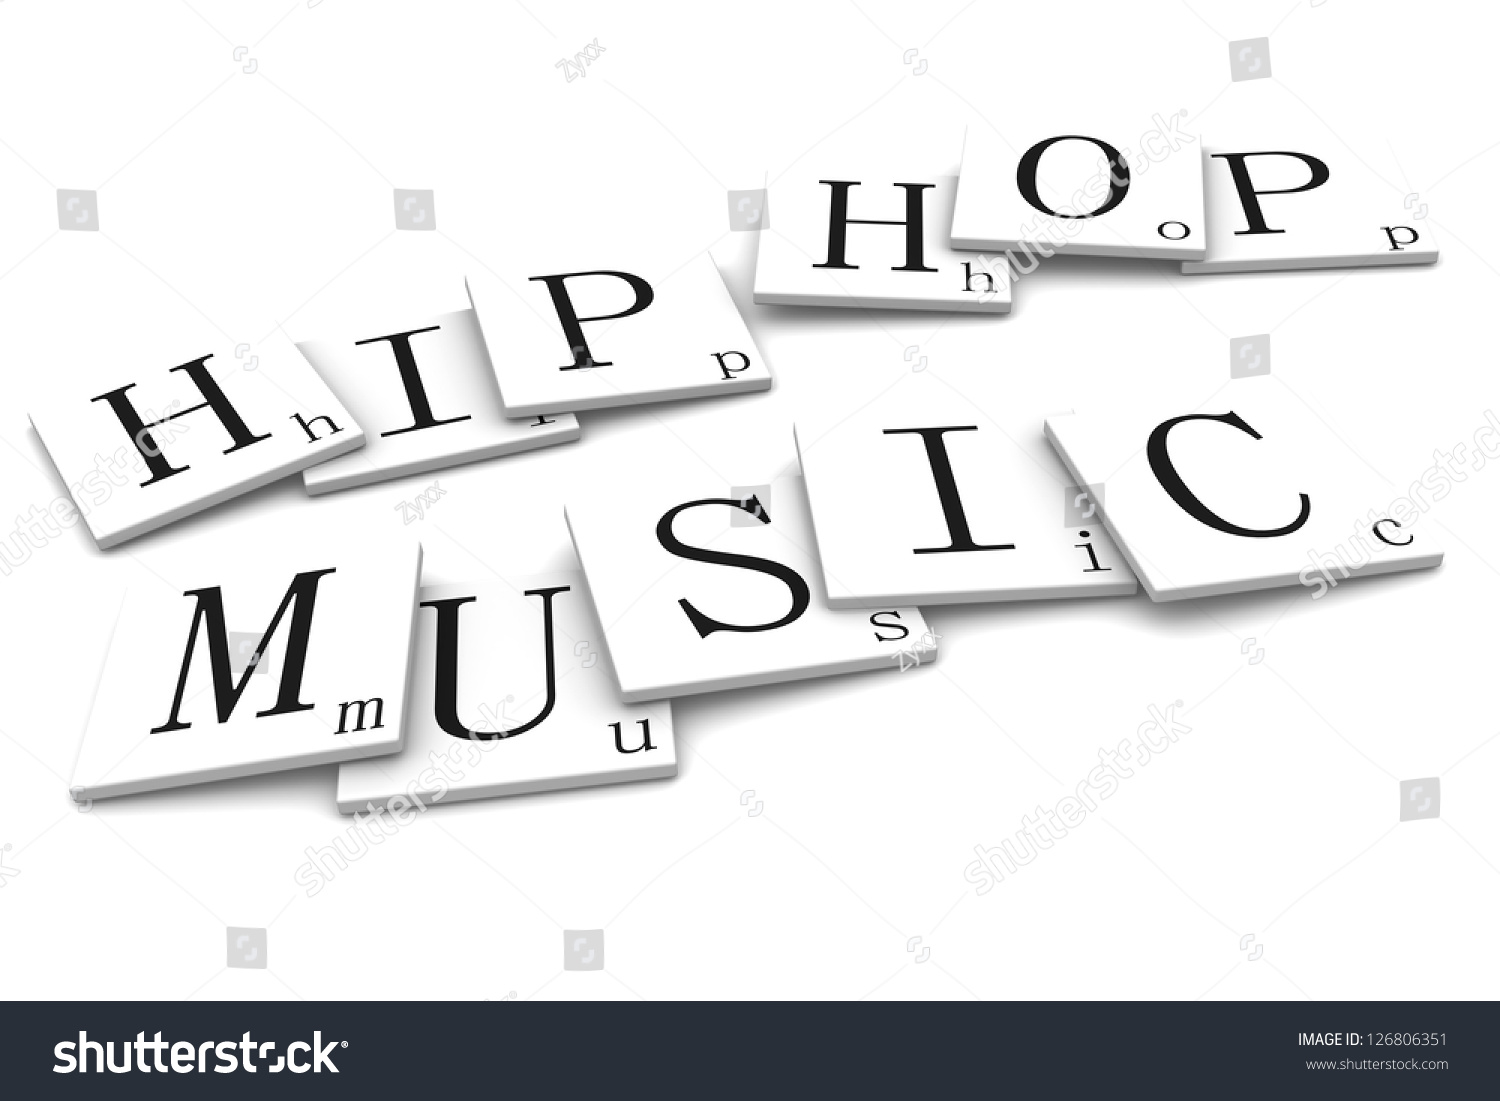 3 D Signs Word Hip Hop Music Stock Illustration 126806351 Shutterstock